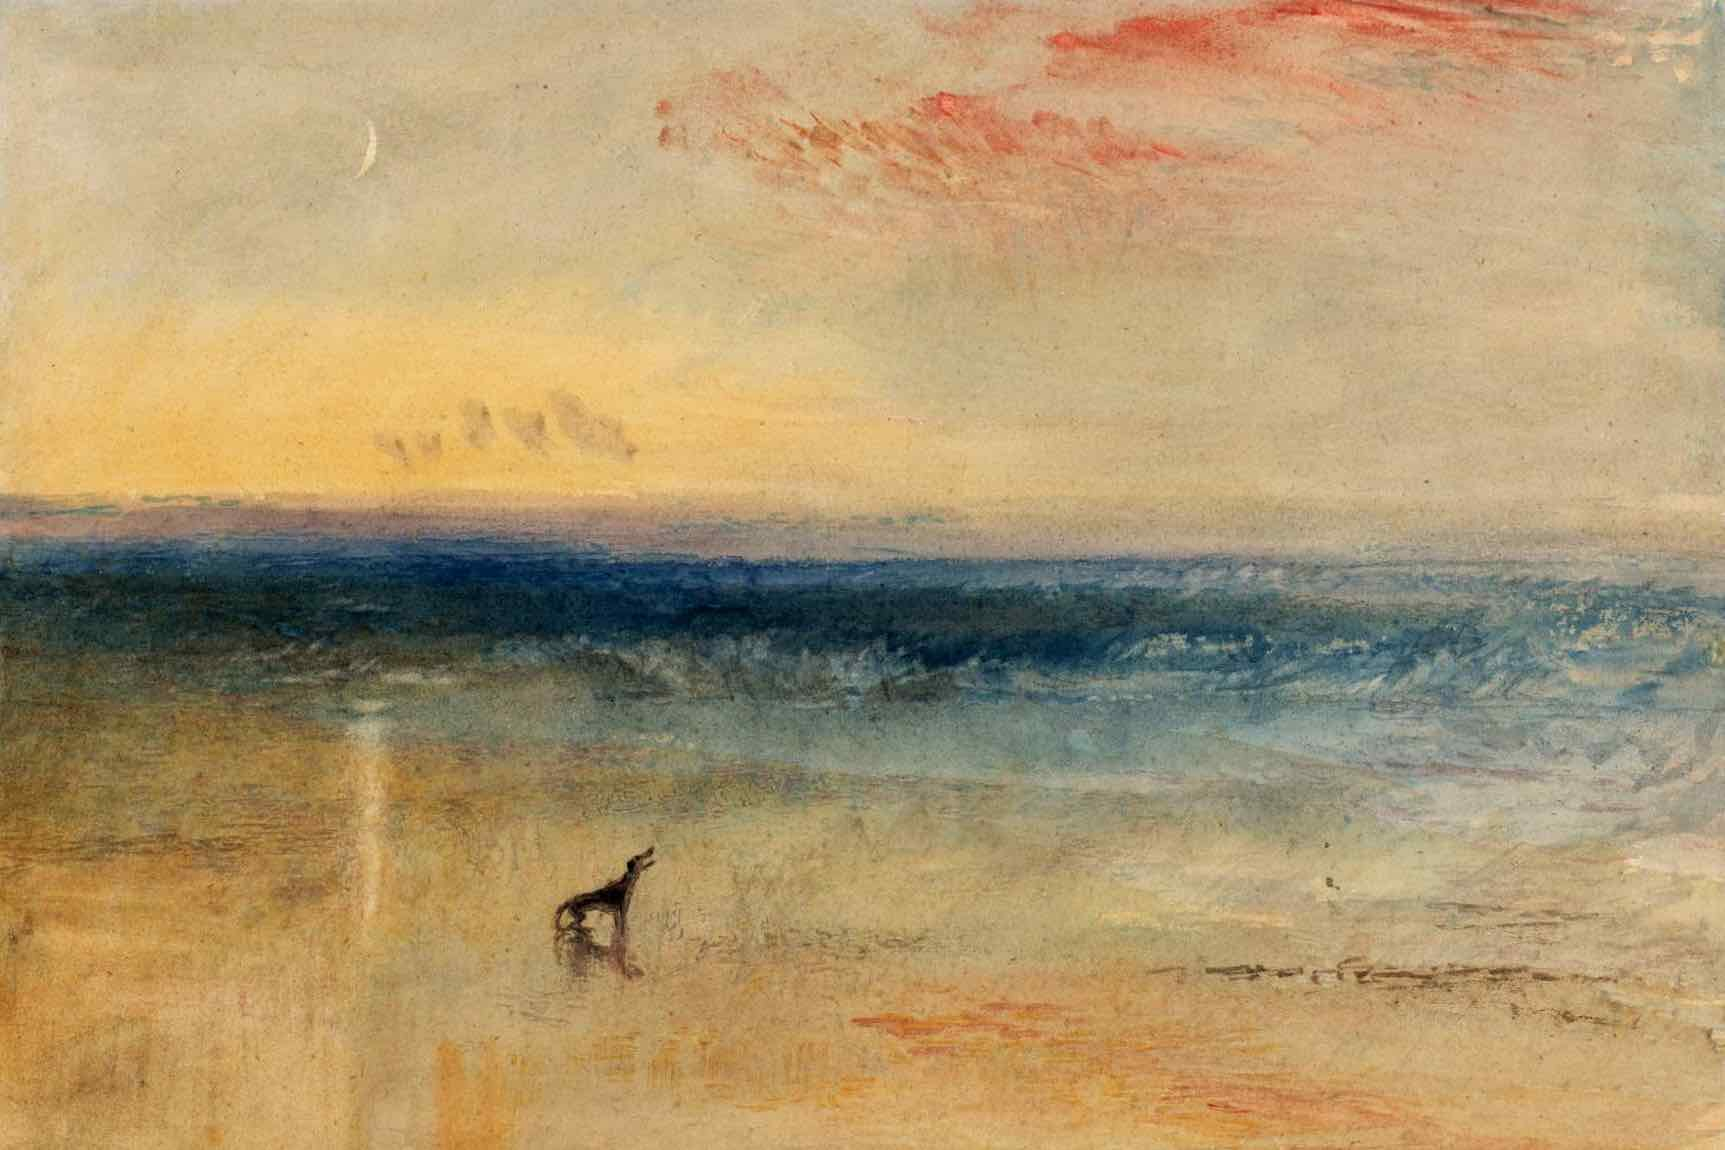 William-Turner-Dawn-after-the-wreck.jpg